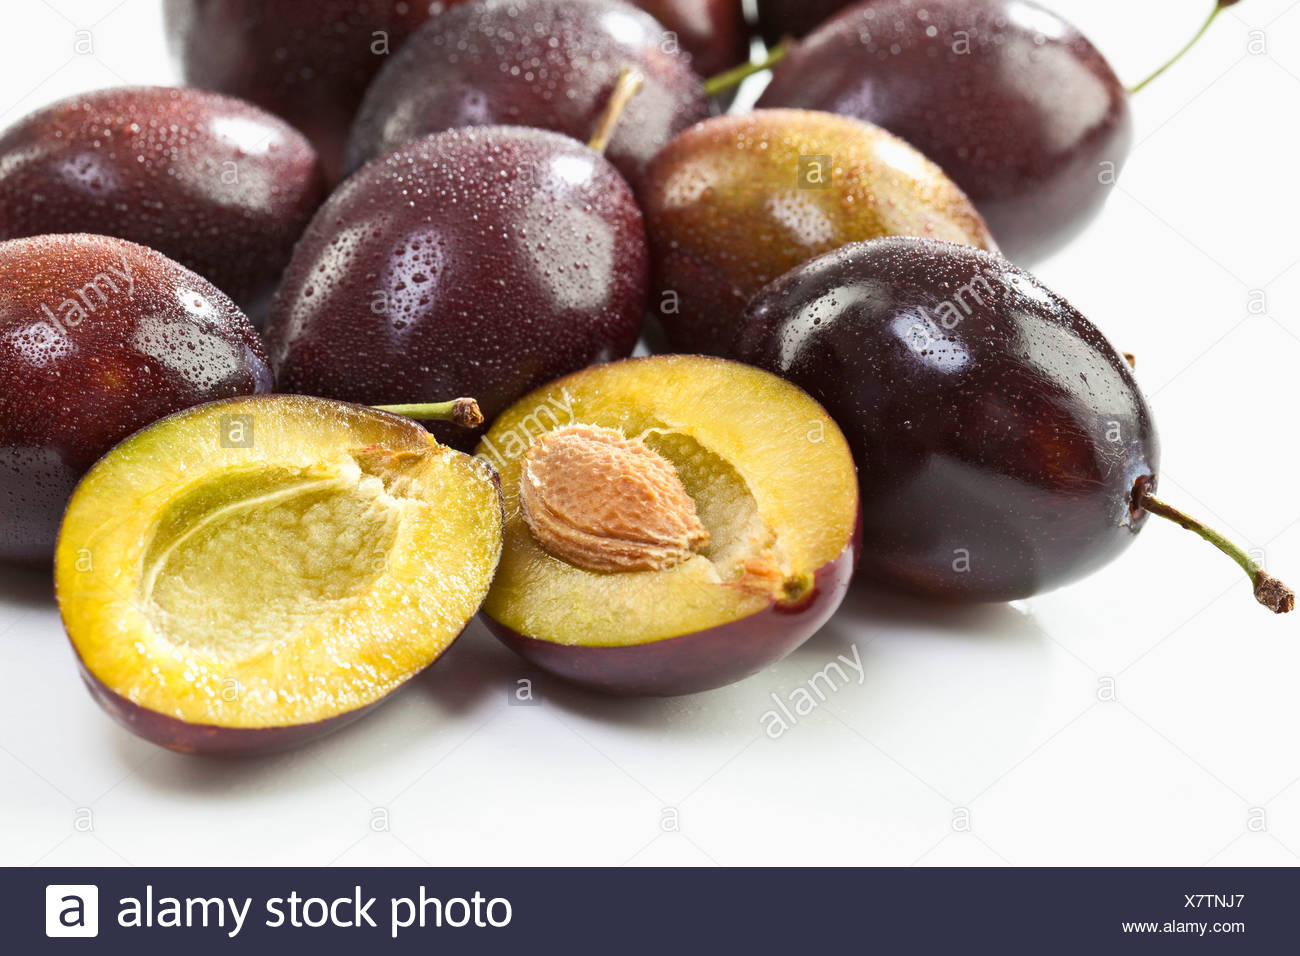 Entire and sliced plums Stock Photo